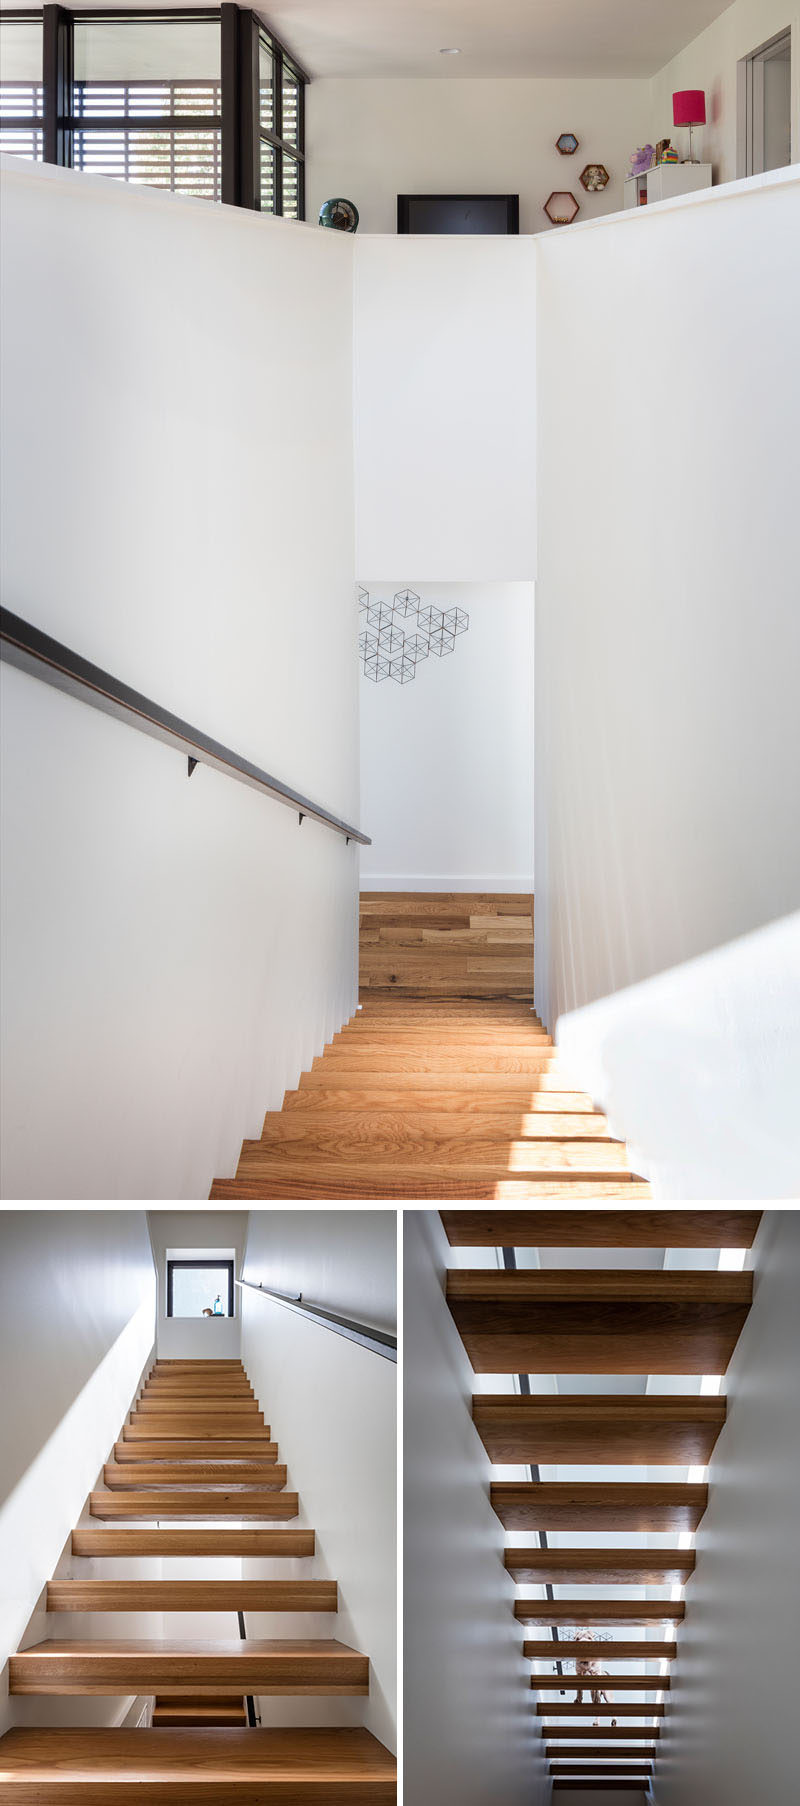 These modern wood stairs are surrounded by white walls and connect the various levels of the home.